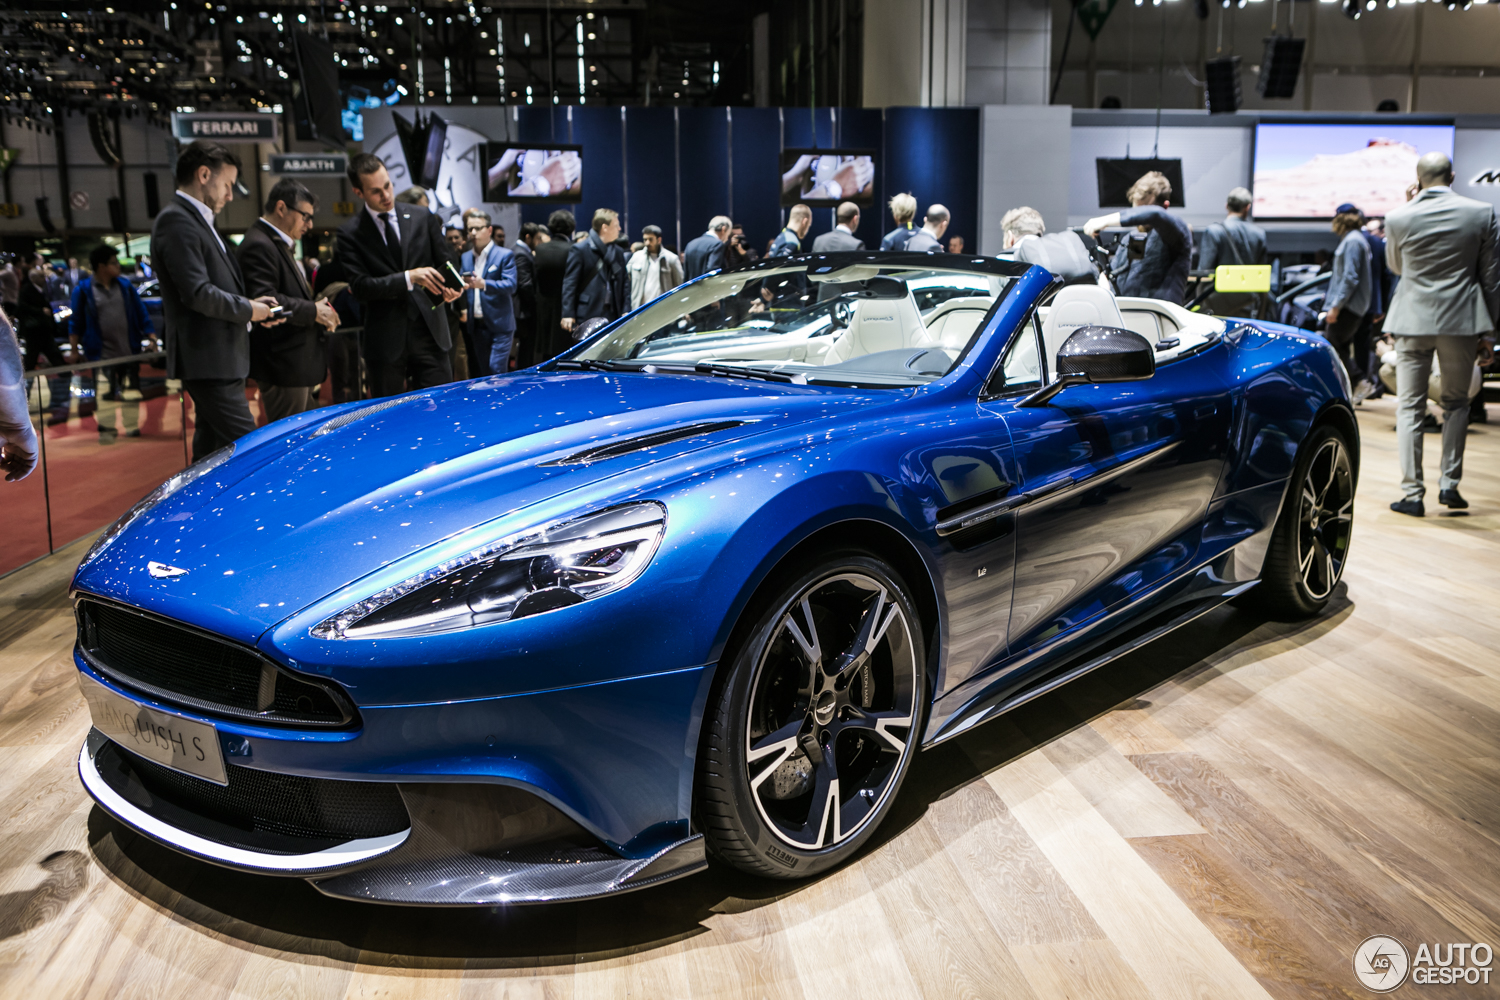 Images Of Aston Martin Vanquish Blue Golfclub - Aston martin troy